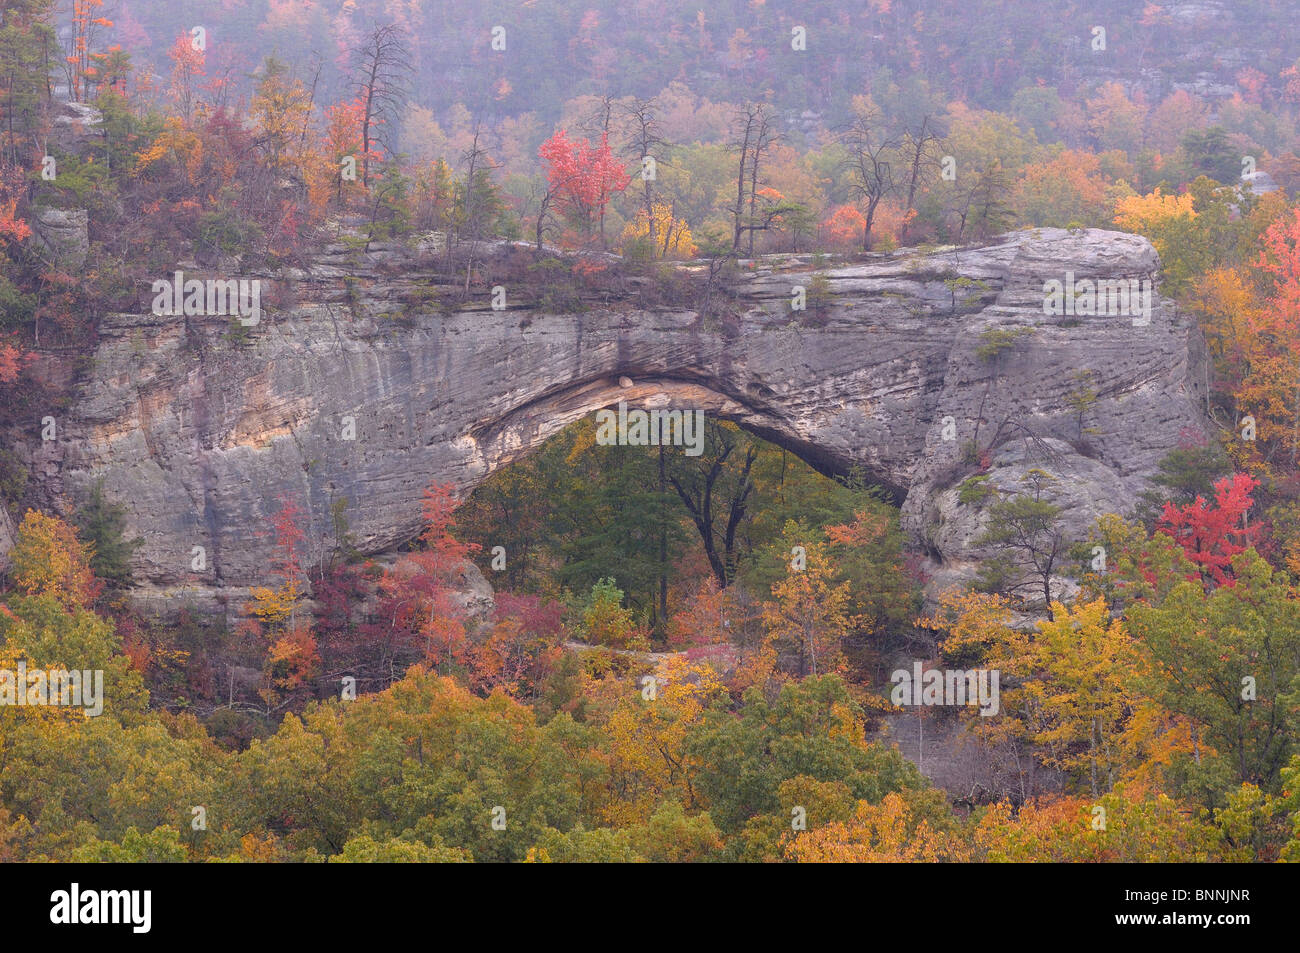 Natural Arch Daniel Boone National Forest Whitley City